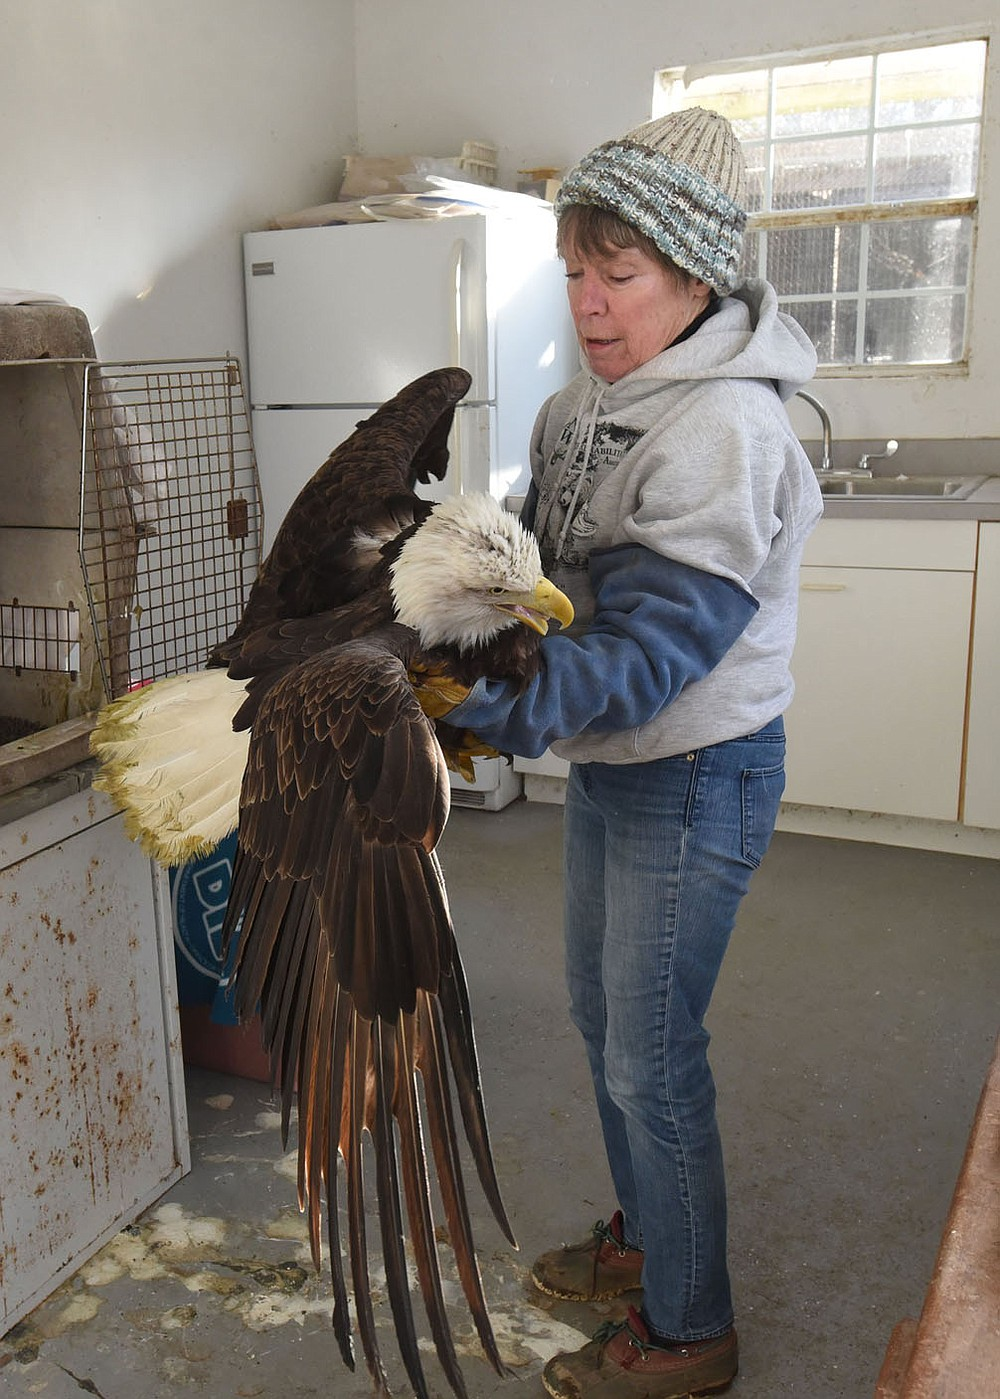 WILDLIFE ON THE MEND Lynn Sciumbato, federally licensed wildlife rehabilitator, carefully cradles an injured bald eagle Tuesday Jan. 12 2021 to move the raptor from a crate to a more spacious outdoor coop. As the eagle heals, it will be moved to a flight cage where it can fly short distances to prepare it for release back into the wild.  Arkansas Game and Fish Commission personnel found the injured eagle two weeks ago near Ozark and brought it to Morning Star Wildlife Rehabilitation Center near Gravette, operated by Sciumbato. The eagle has injuries to its back area. Her diagnosis is the eagle got into a fight with another eagle. Sciumbato hopes the eagle can be released  in one month. She has been a wildlife rehabilitator for 33 years. Go to nwaonline.com/210113Daily/ to see more photos. (NWA Democrat-Gazette/Flip Putthoff